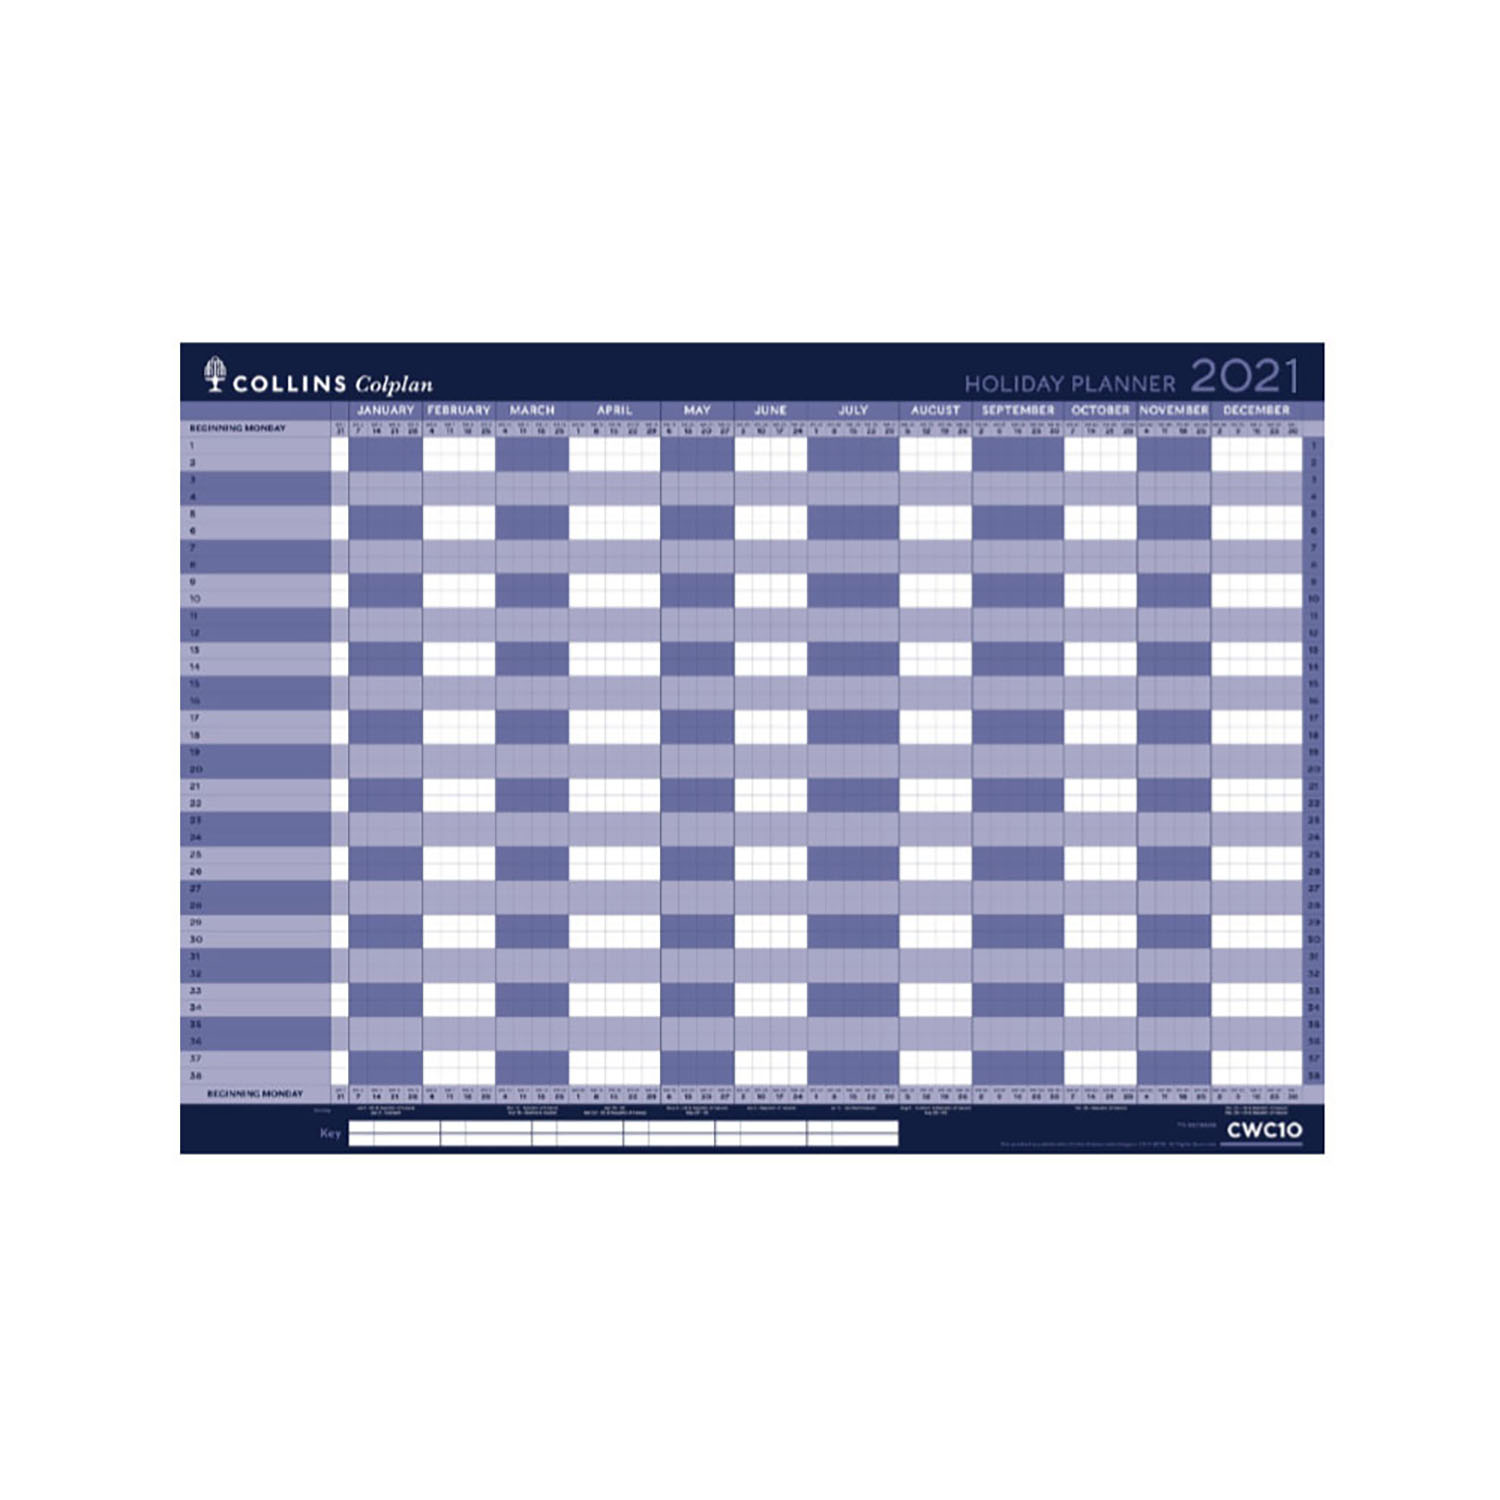 Planners Collins Colplan 2021 Holiday Wall Planner Unmounted Landscape A1 594x840mm Blue Ref CWC10 2021